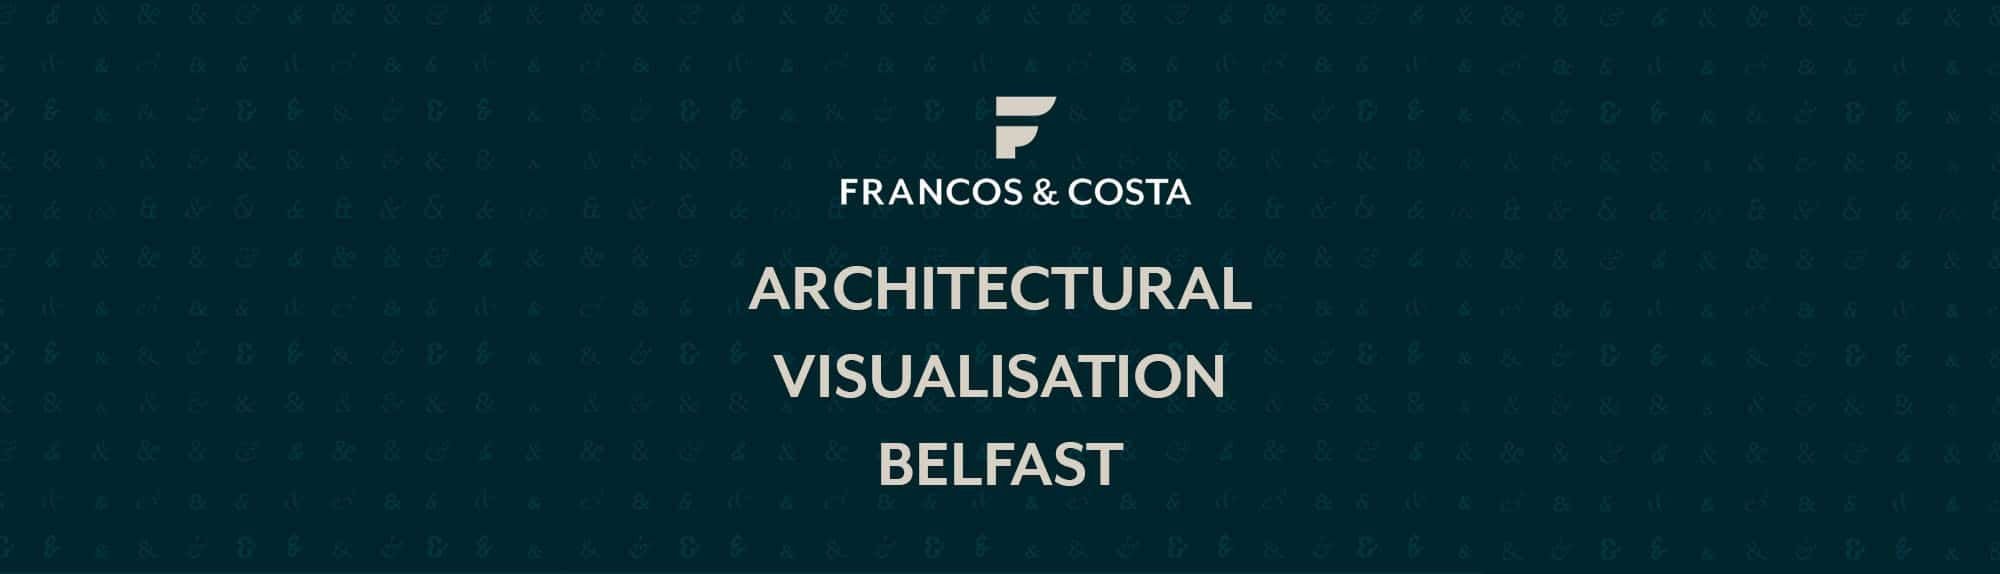 architectural-visualisation-belfast-francos-and-costa-architectural-visualisation-agency